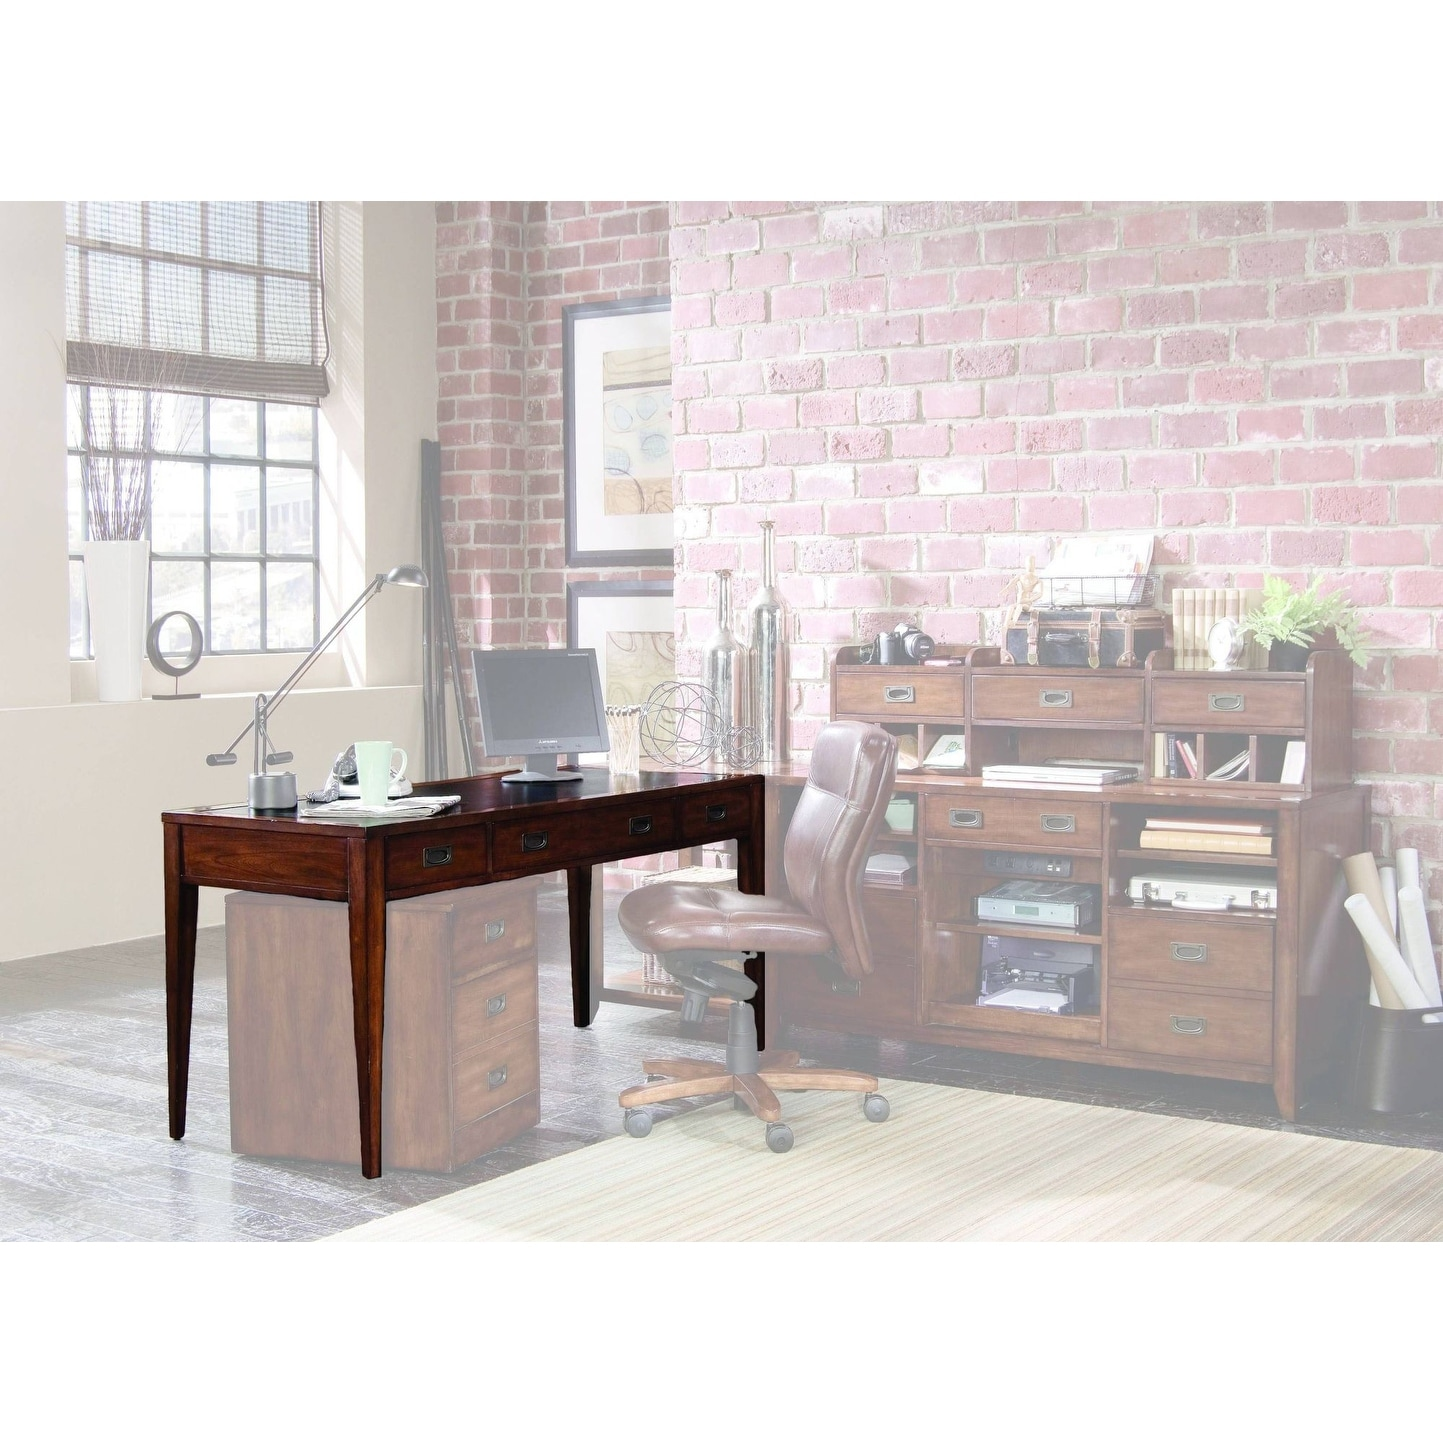 Shop hooker furniture 388 10 458 60 wide birch wood writing desk from the danforth collection rich medium brown n a free shipping today